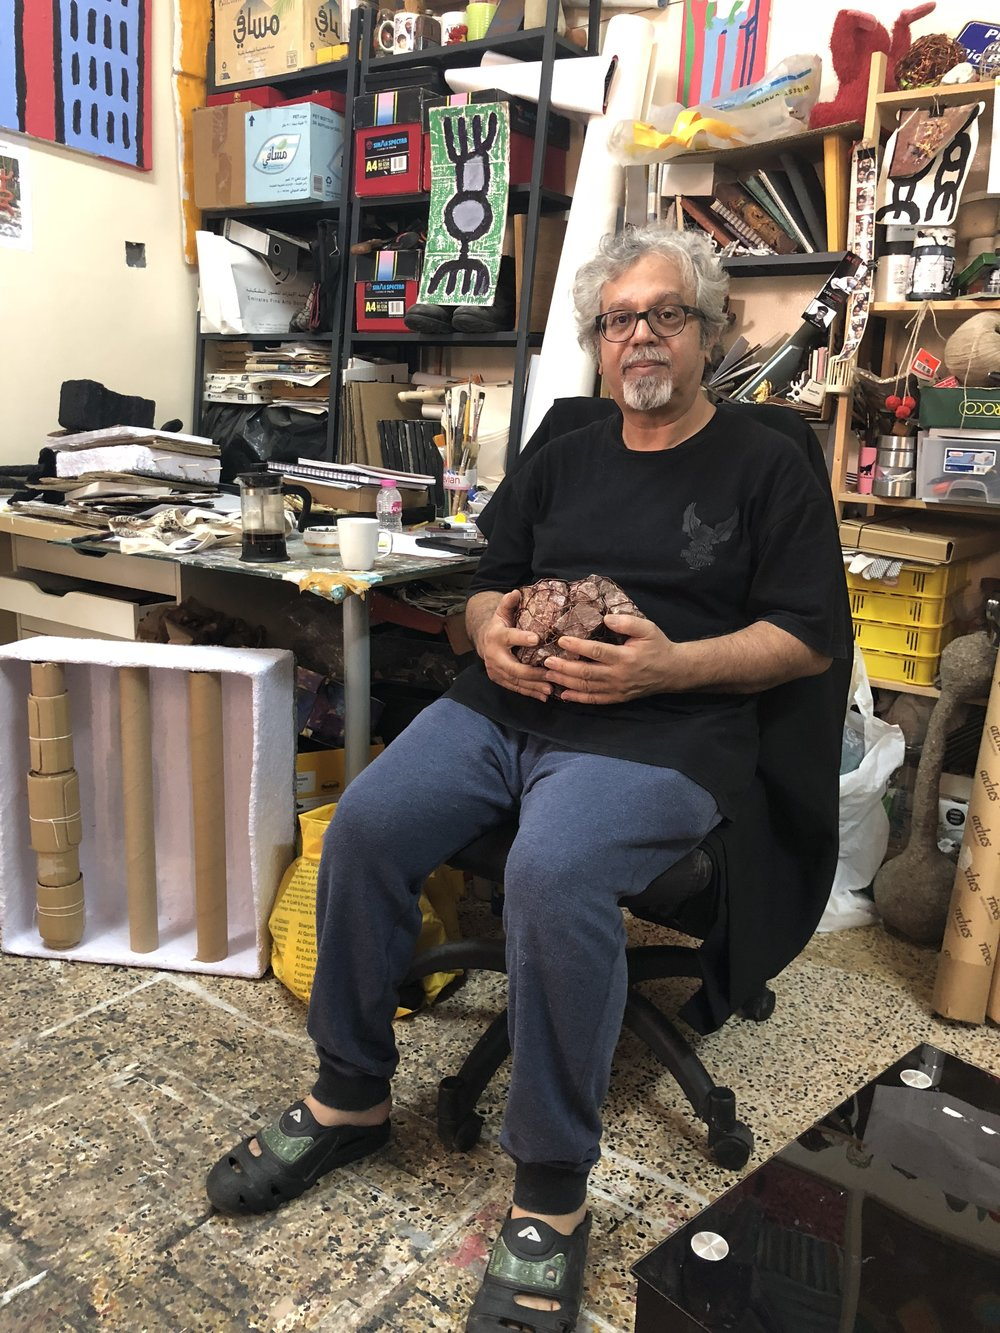 Mohammed Ahmed Ibrahim in his home studio in Khorfakkan. Image taken by Anna Seaman during the interview for Harper's Bazaar Art Arabia.